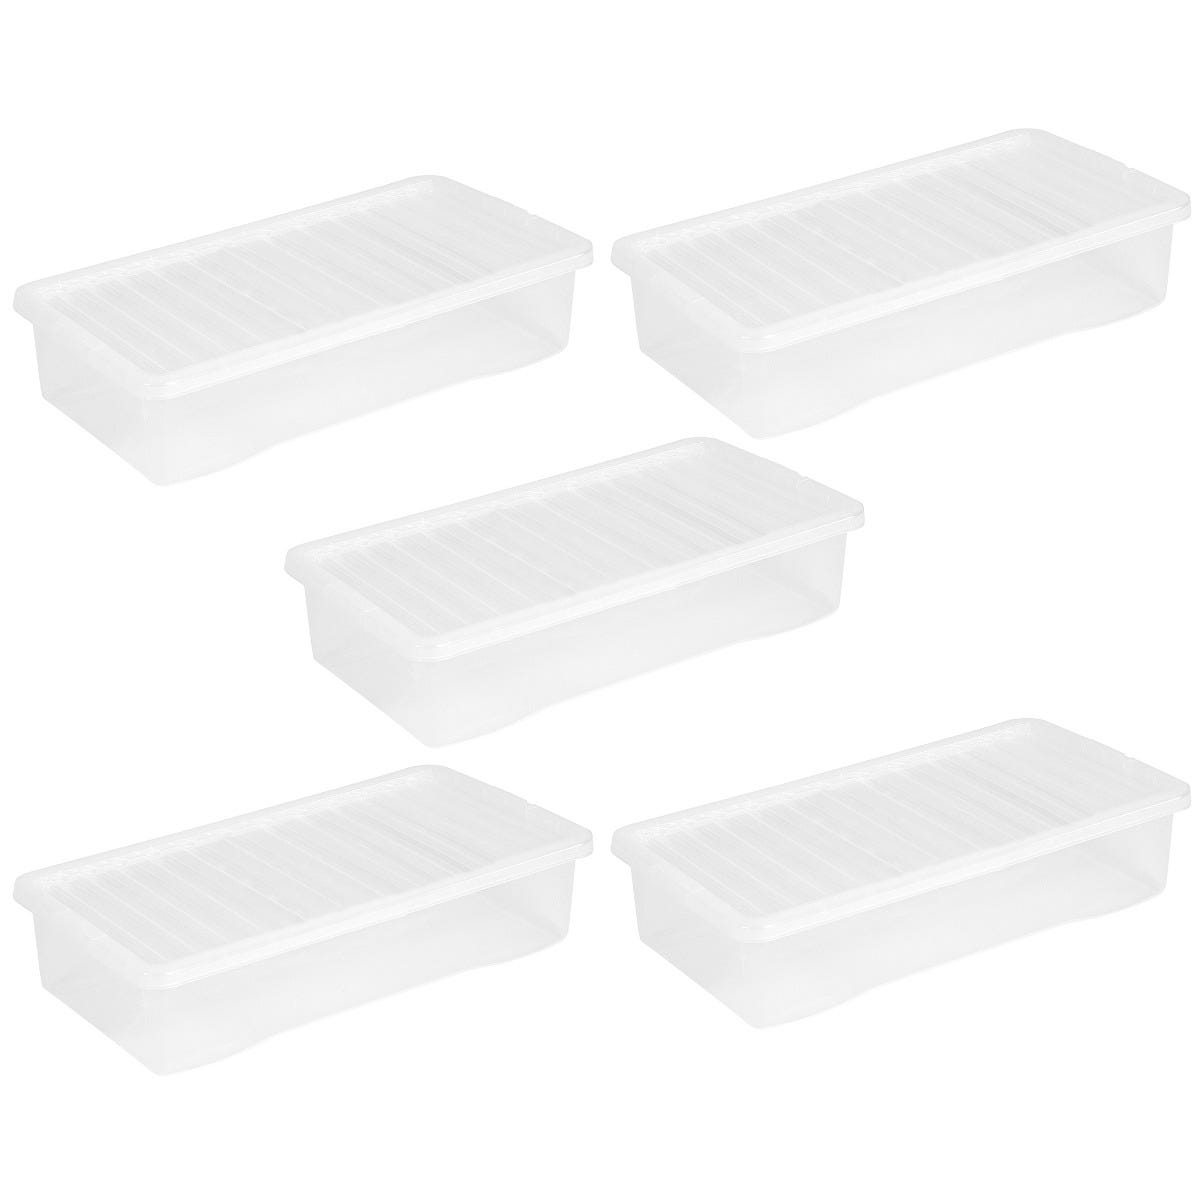 Wham Crystal Clear Under Bed Storage Box with Lid 42L - Set of 5